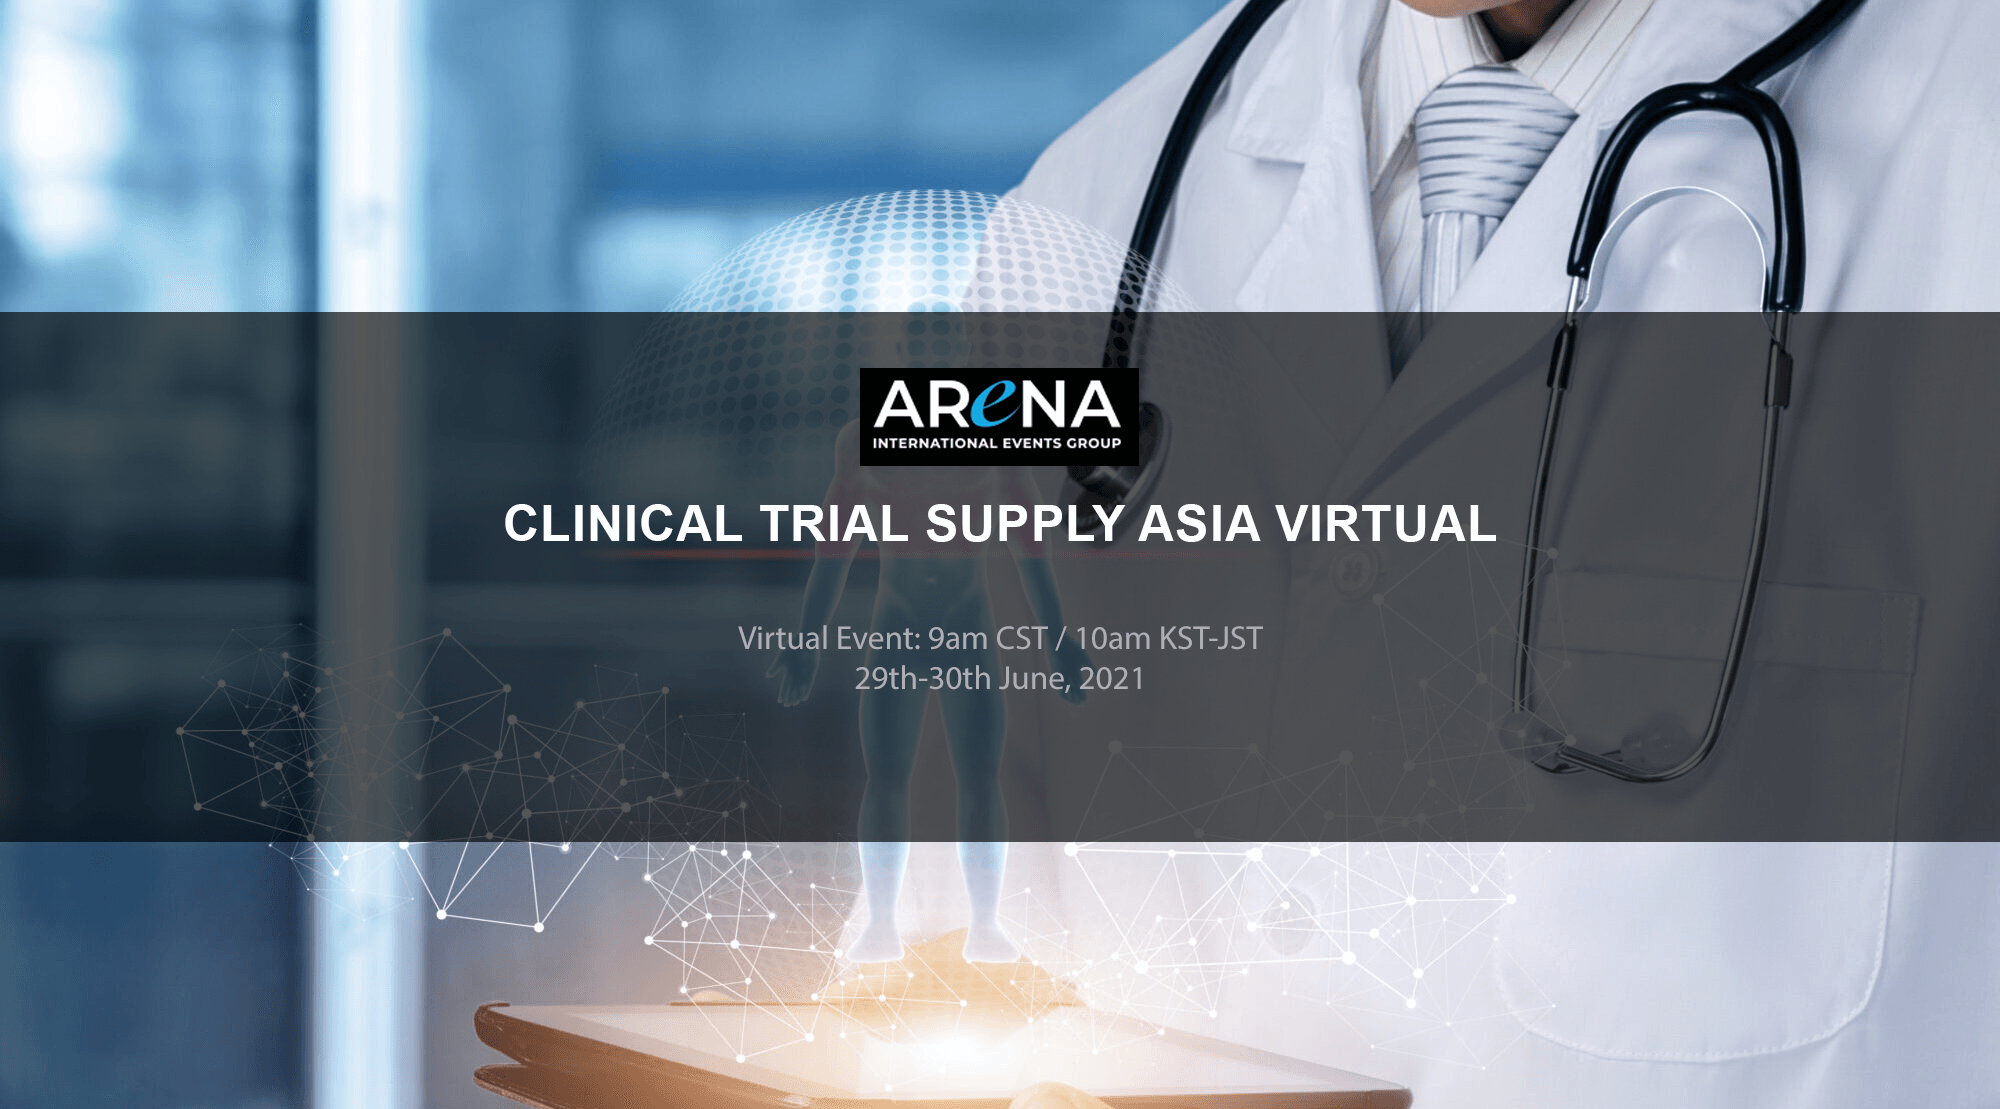 CLINICAL TRIAL SUPPLY ASIA VIRTUAL CONFERENCE